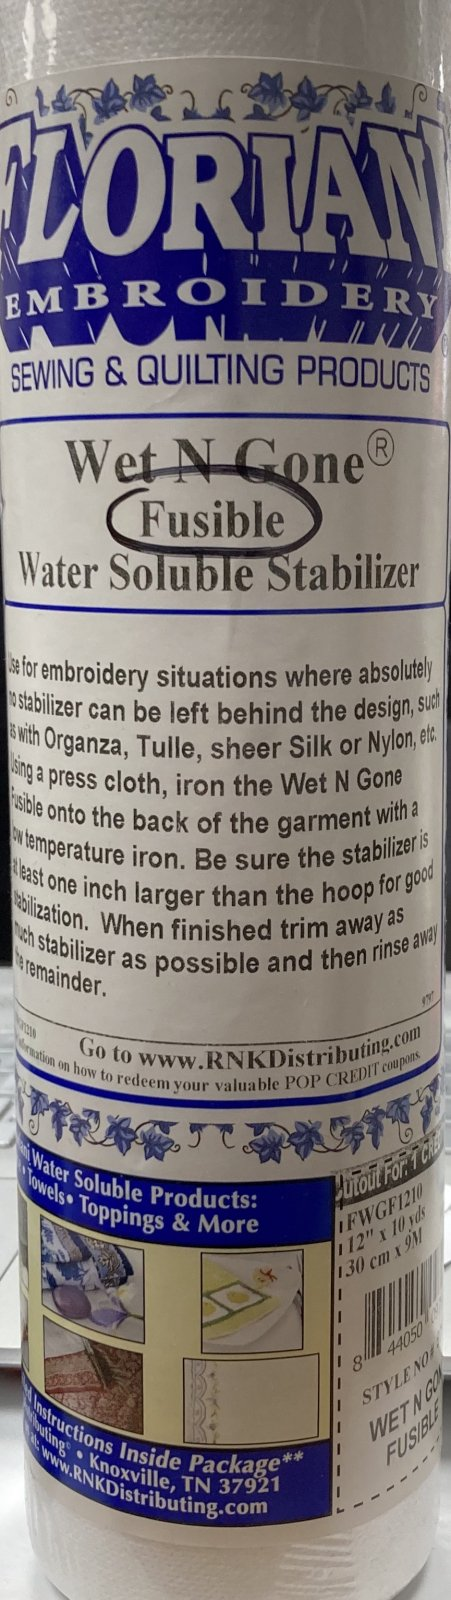 Floriani Wet N Gone Fusible Water Soluble Stabilizer - 12 x 10 yards